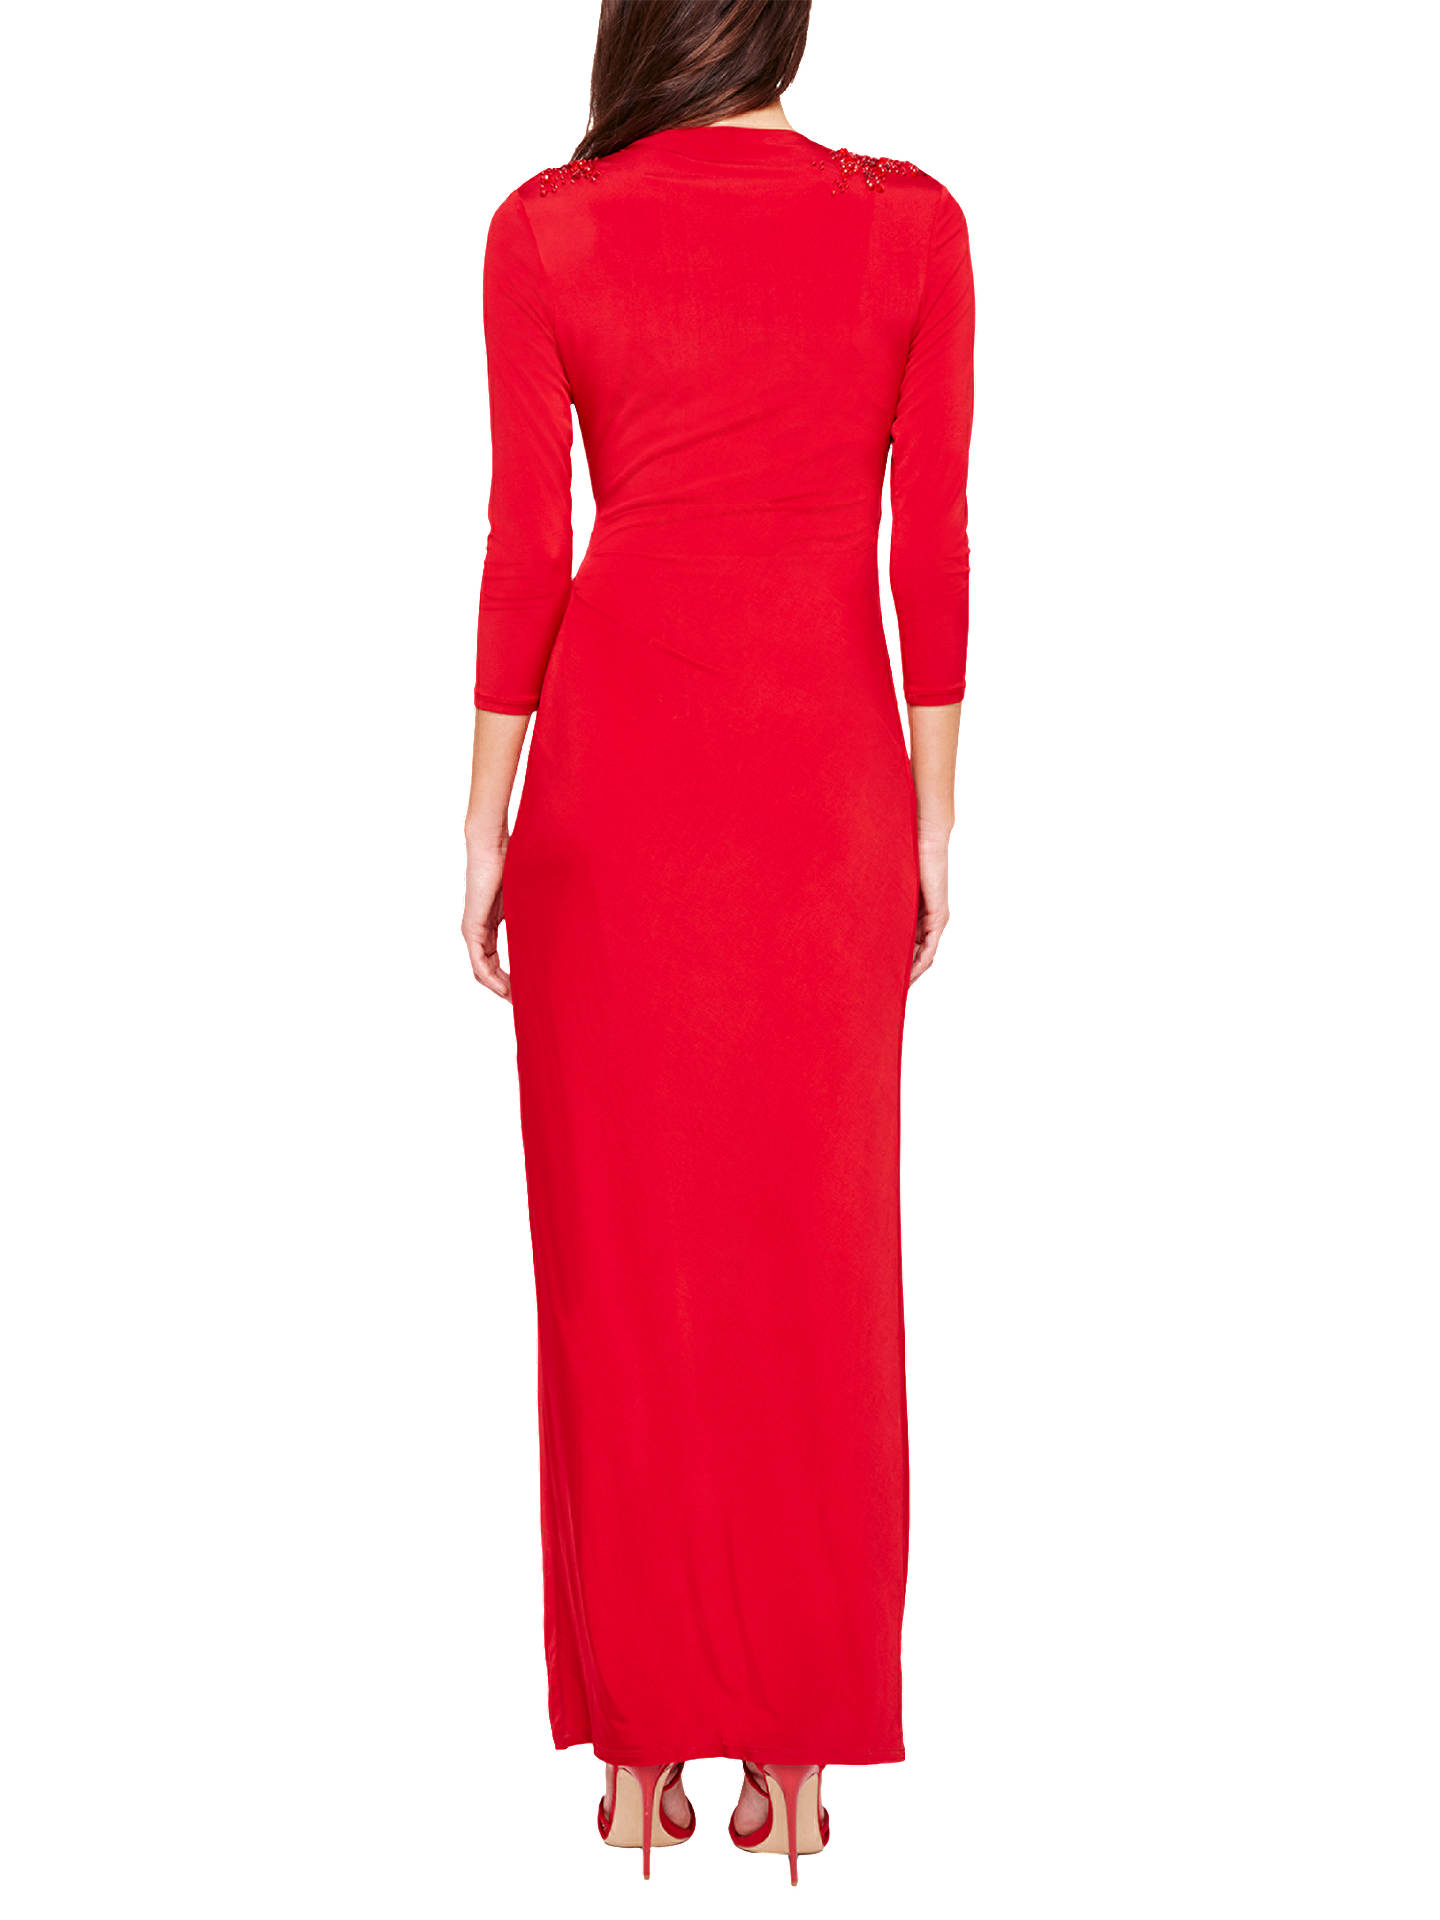 Buy Damsel in a Dress Samia Wrap Maxi Dress, Red, 8 Online at johnlewis.com